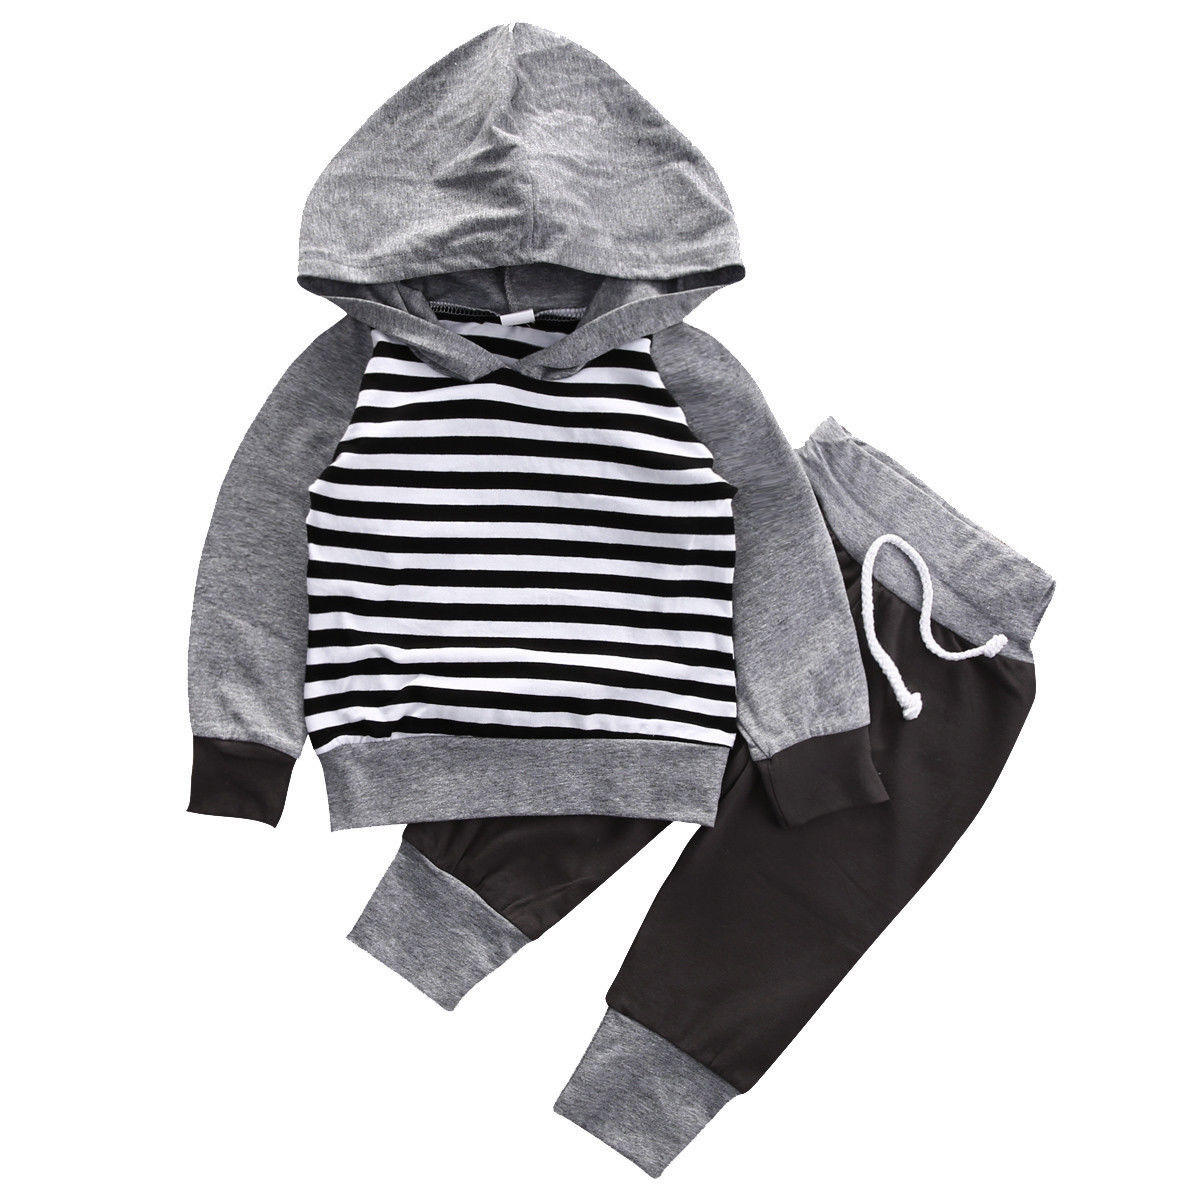 3ad954be75eb 2016 Infant Kids Baby Boy Girl Clothes Striped Hooded T-shirt Top+Pants  Outfit Set cl